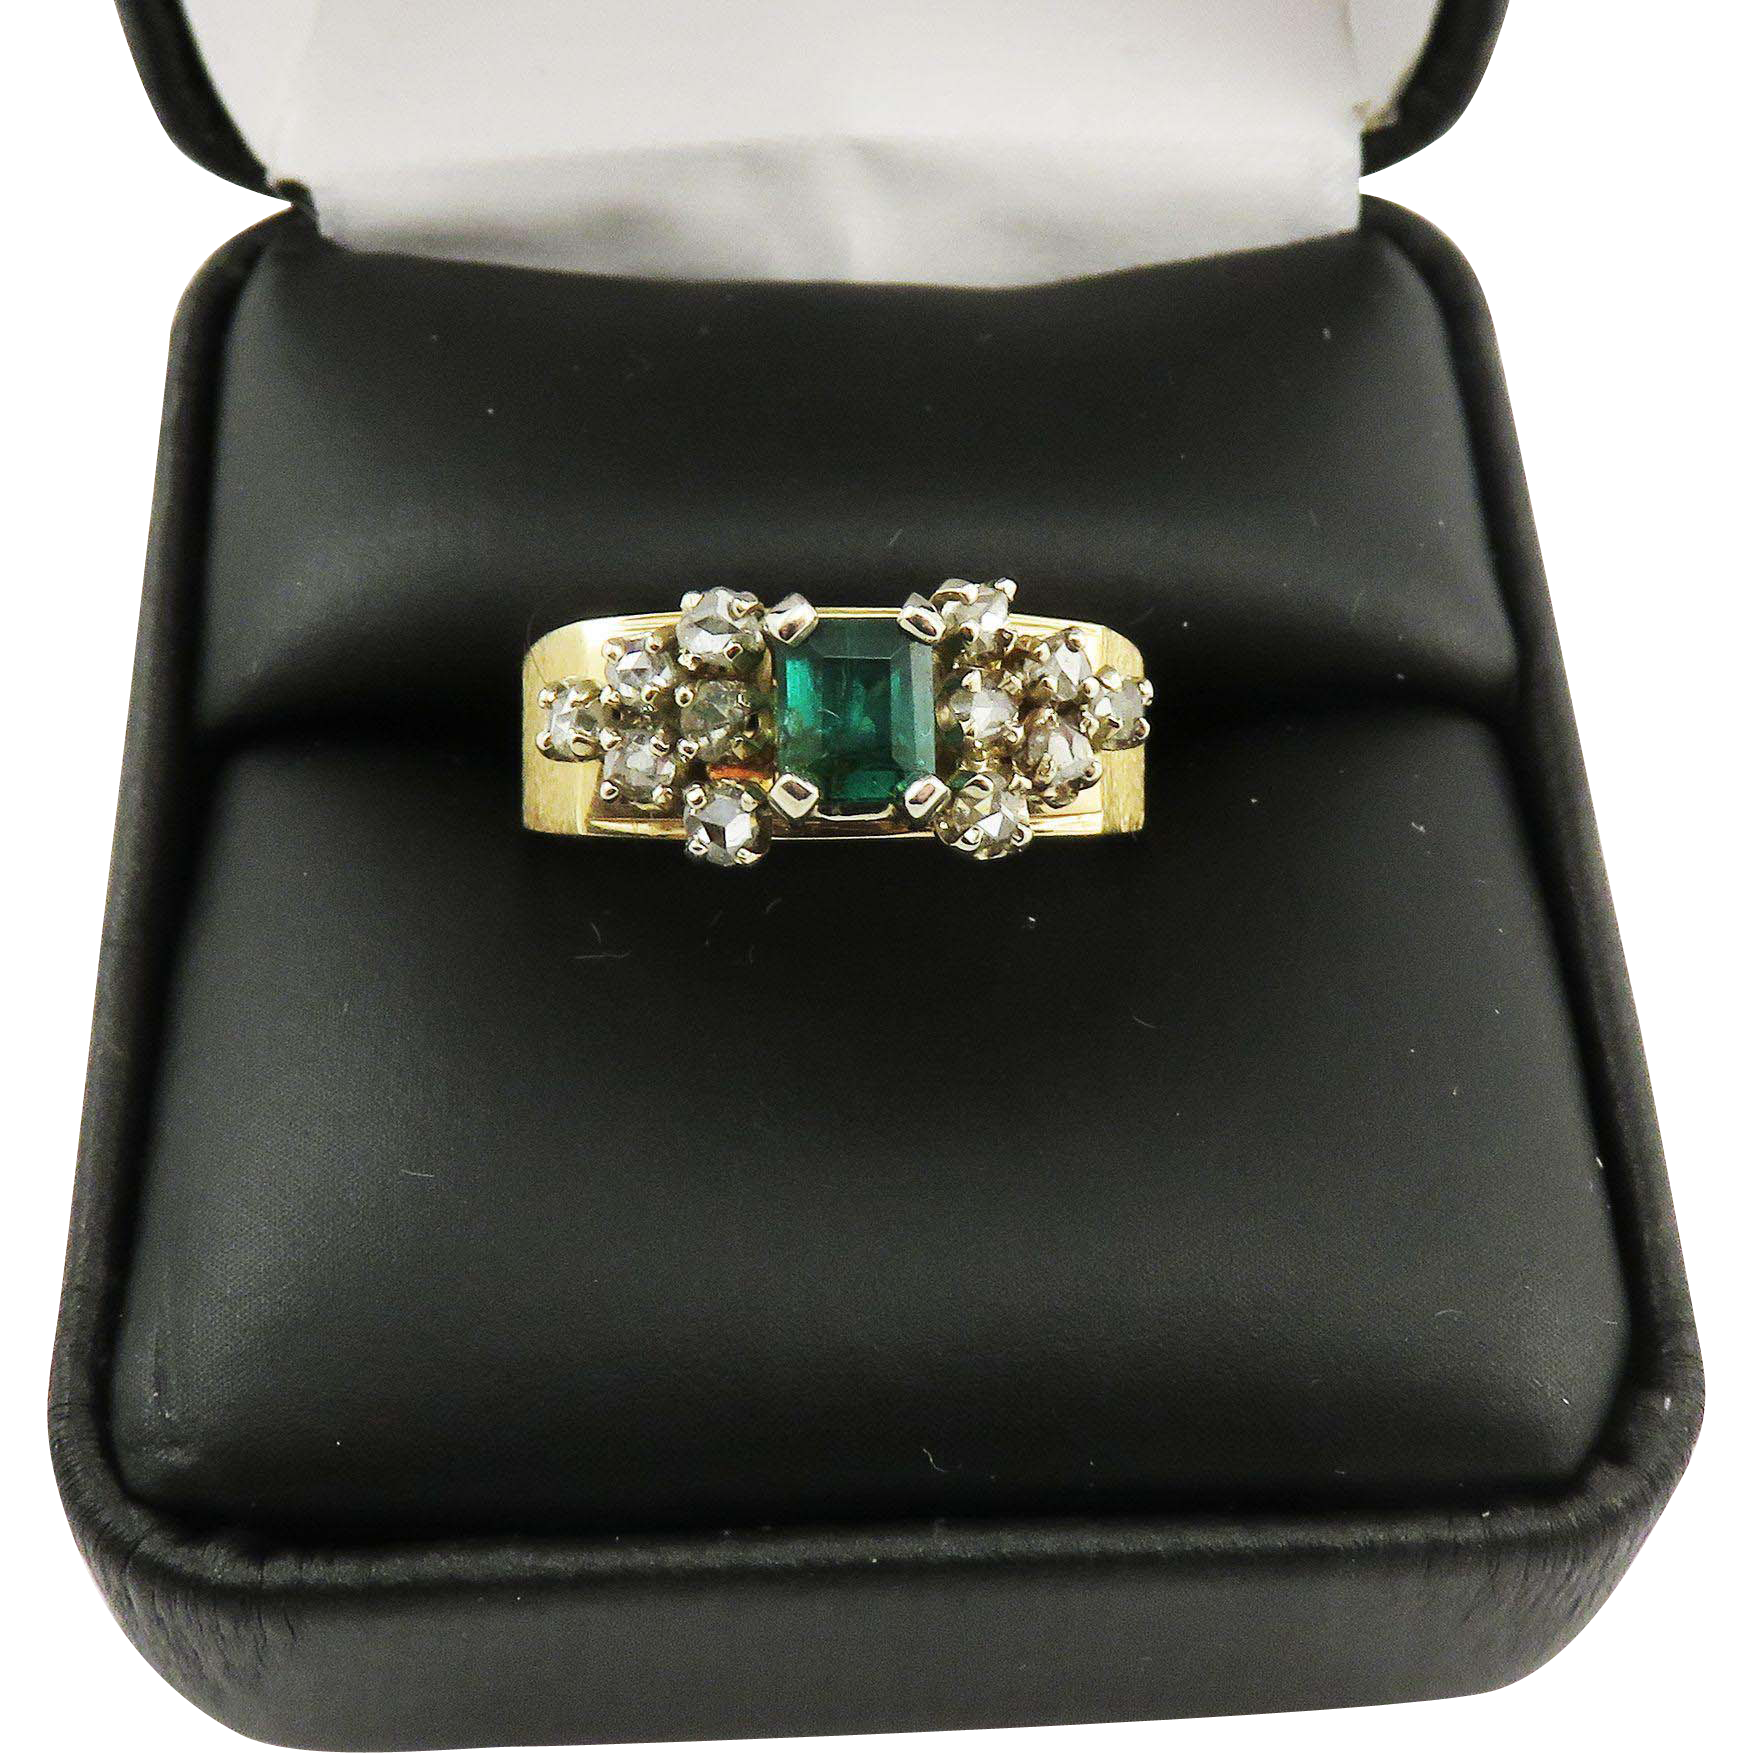 TRULY WONDERFUL Unisex Estate .80 Ct. TW Colombian Emerald/Rose-Cut Diamond/14k Ring, 6.52 Grams, c.1960!